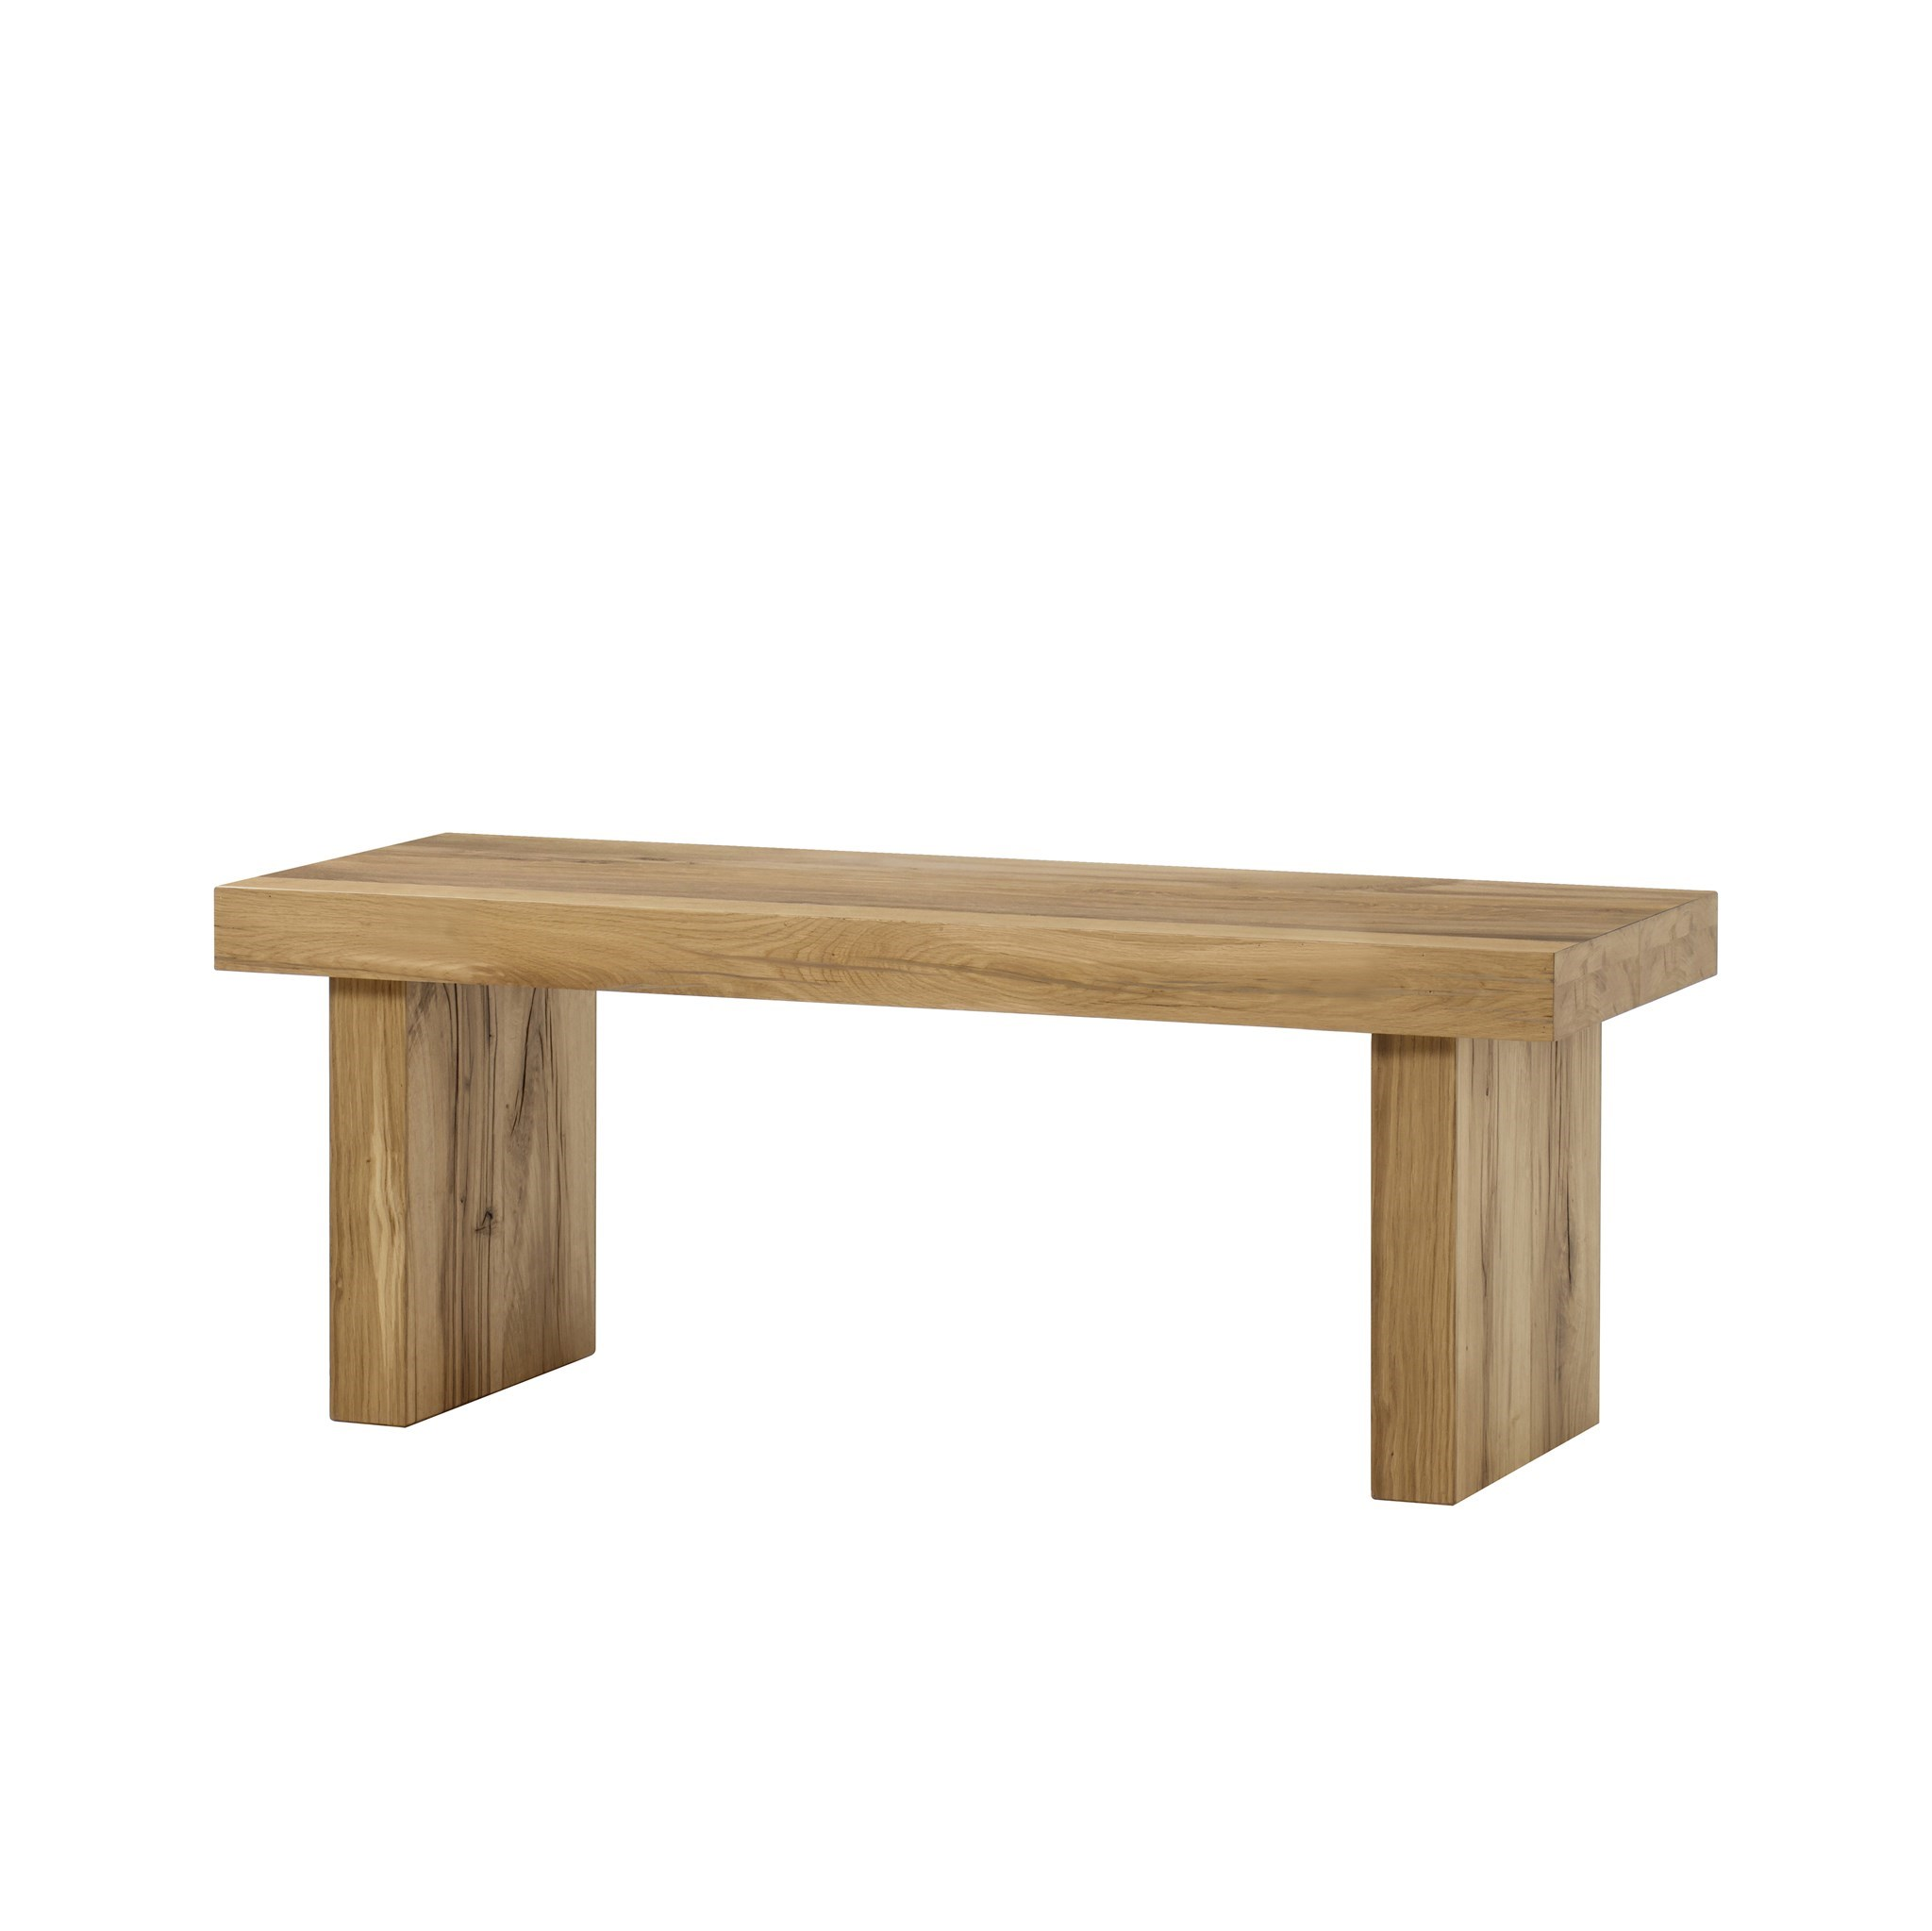 Super Emelia Bench Small Natural Oak Without Seat Pad Unemploymentrelief Wooden Chair Designs For Living Room Unemploymentrelieforg